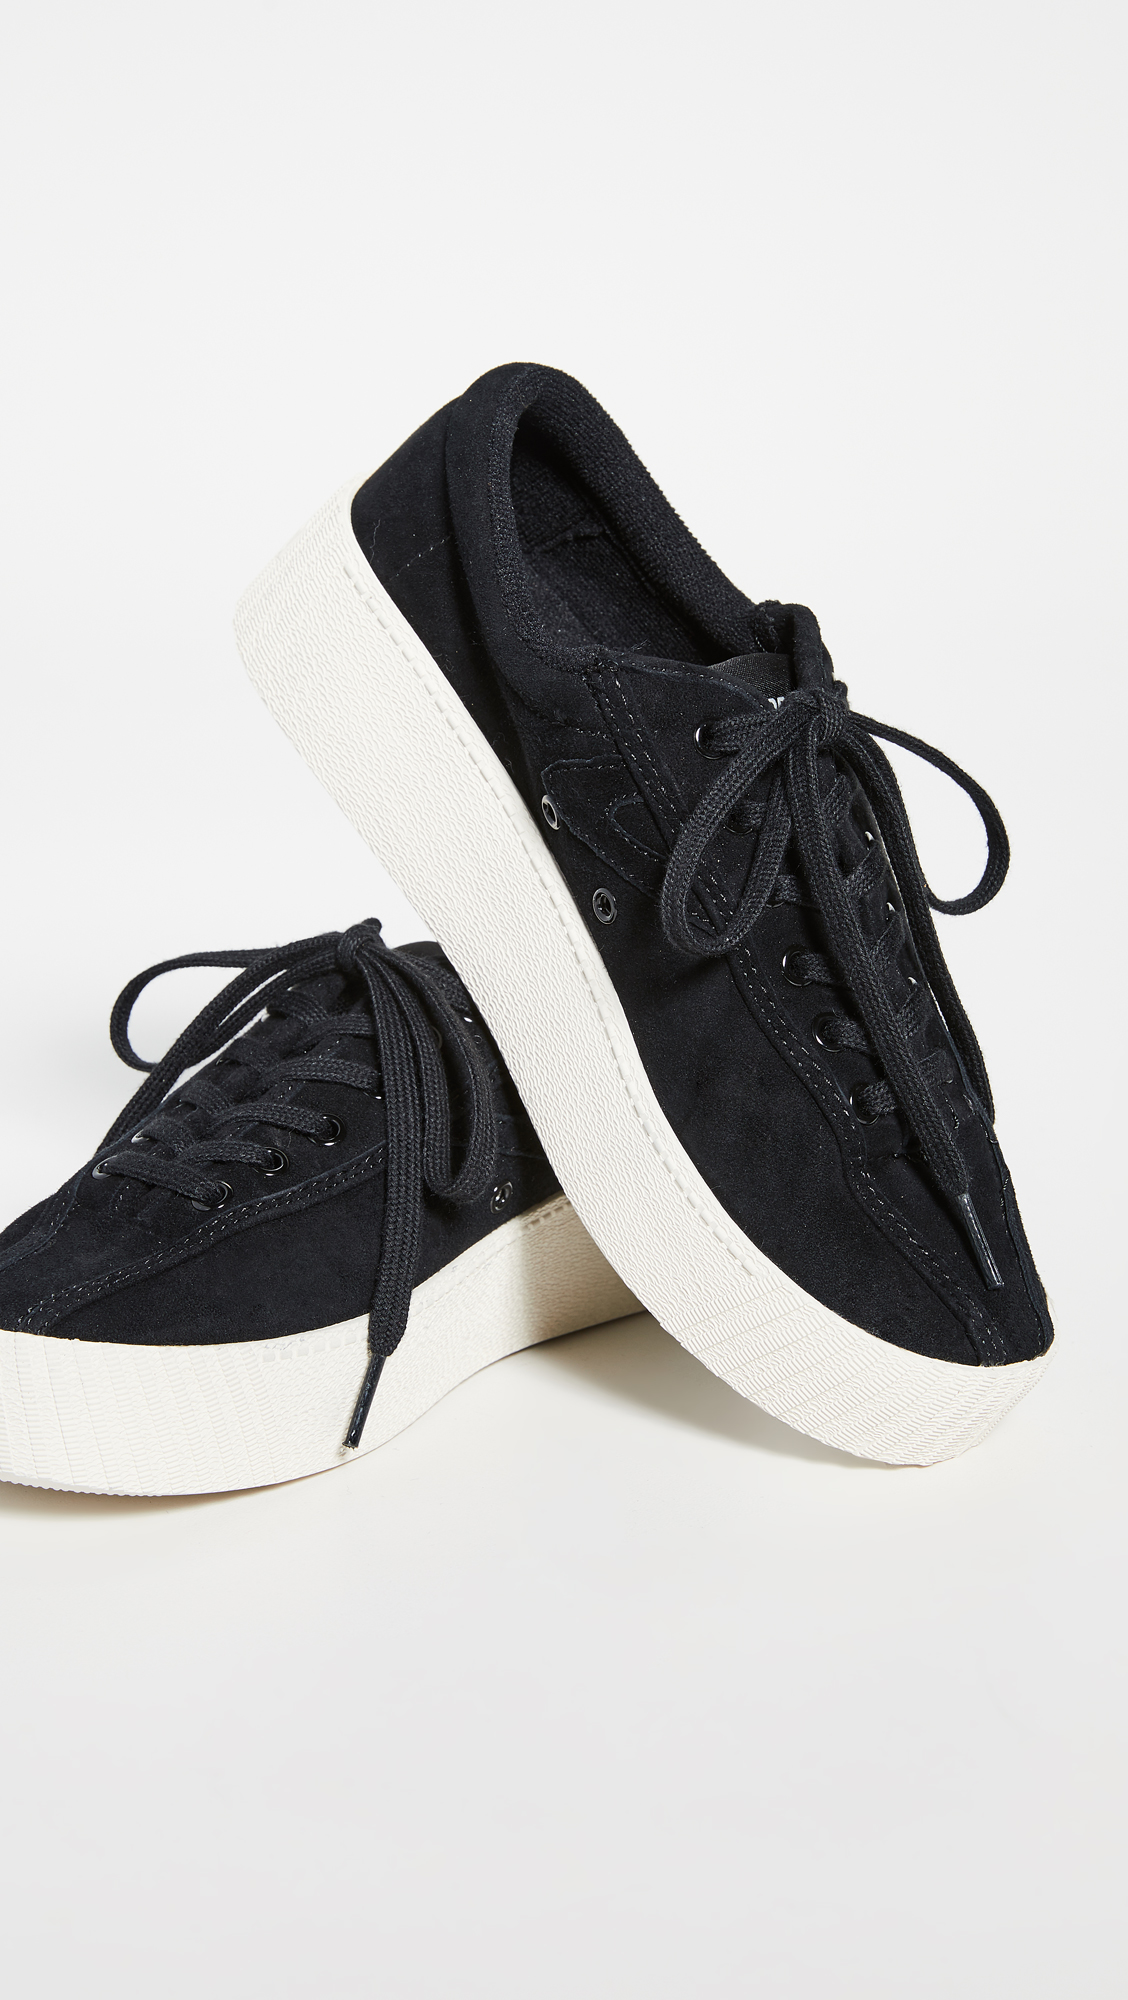 Tretorn Nylite 6 Bold Platform Classic Sneakers | SHOPBOP